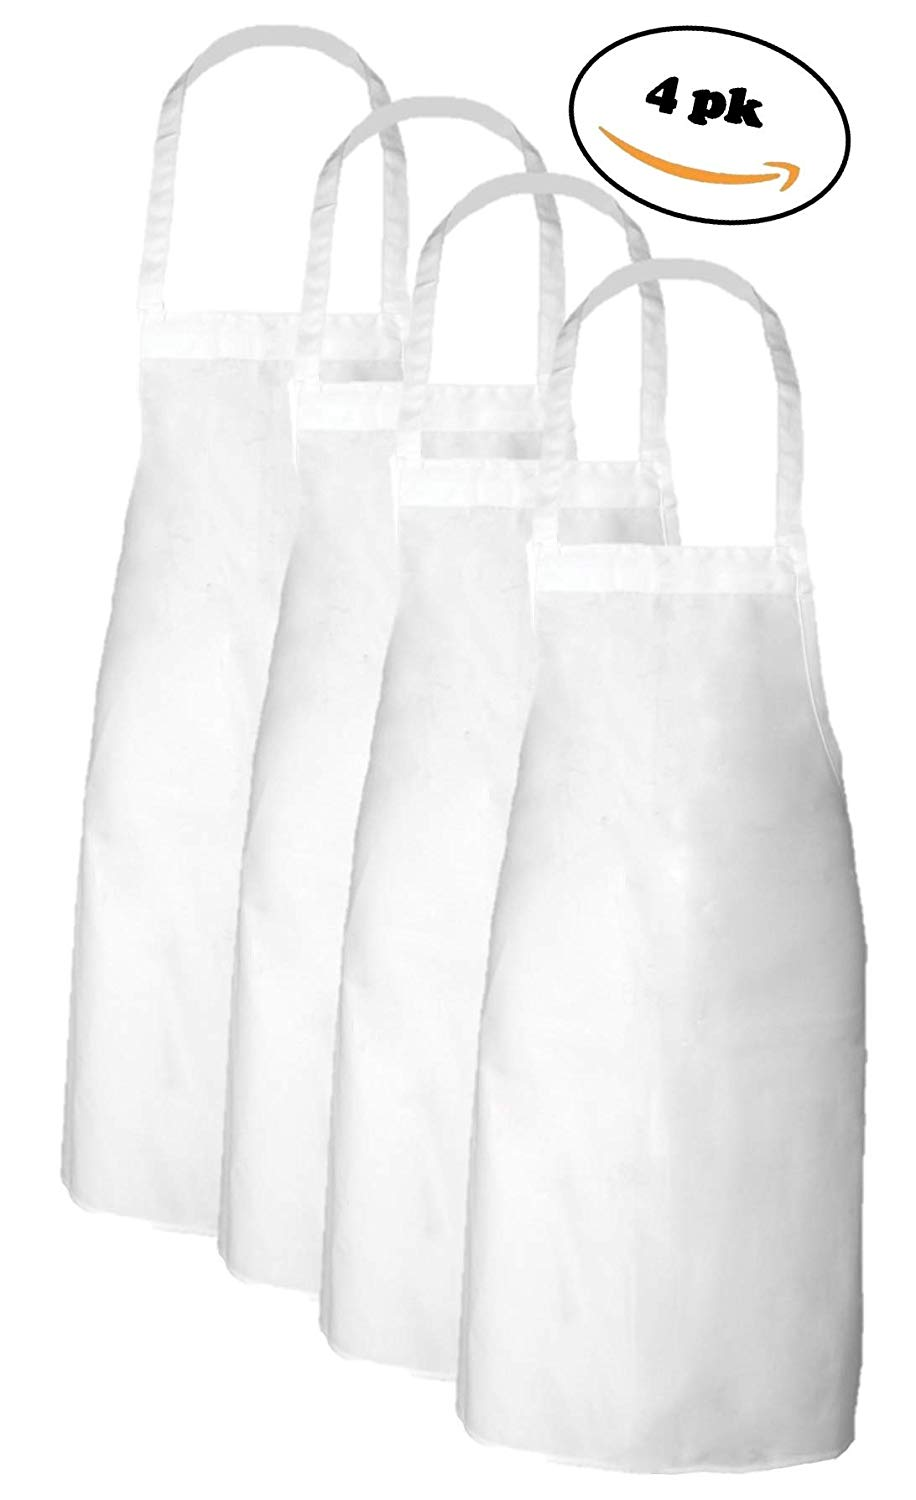 Elaine Karen Adult Men's Women's Unisex Chefs Adjustable Extra Long Ties, Professional Commercial Grade White Bib Apron 4PK